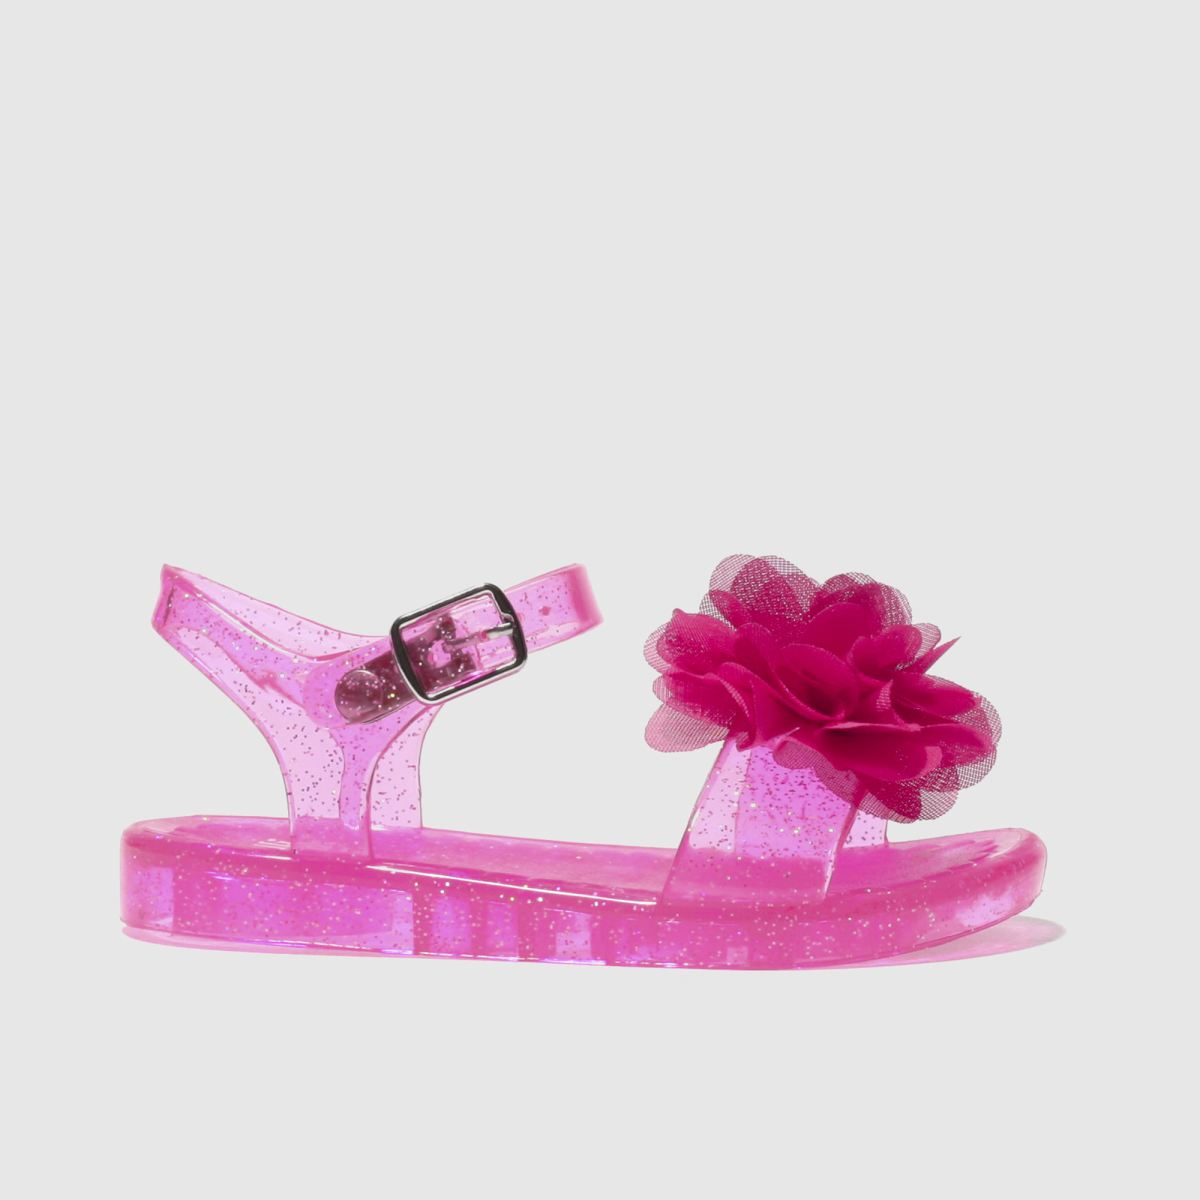 Lelli Kelly Lelli Kelly  Pink Fiore Girls Toddler Sandals